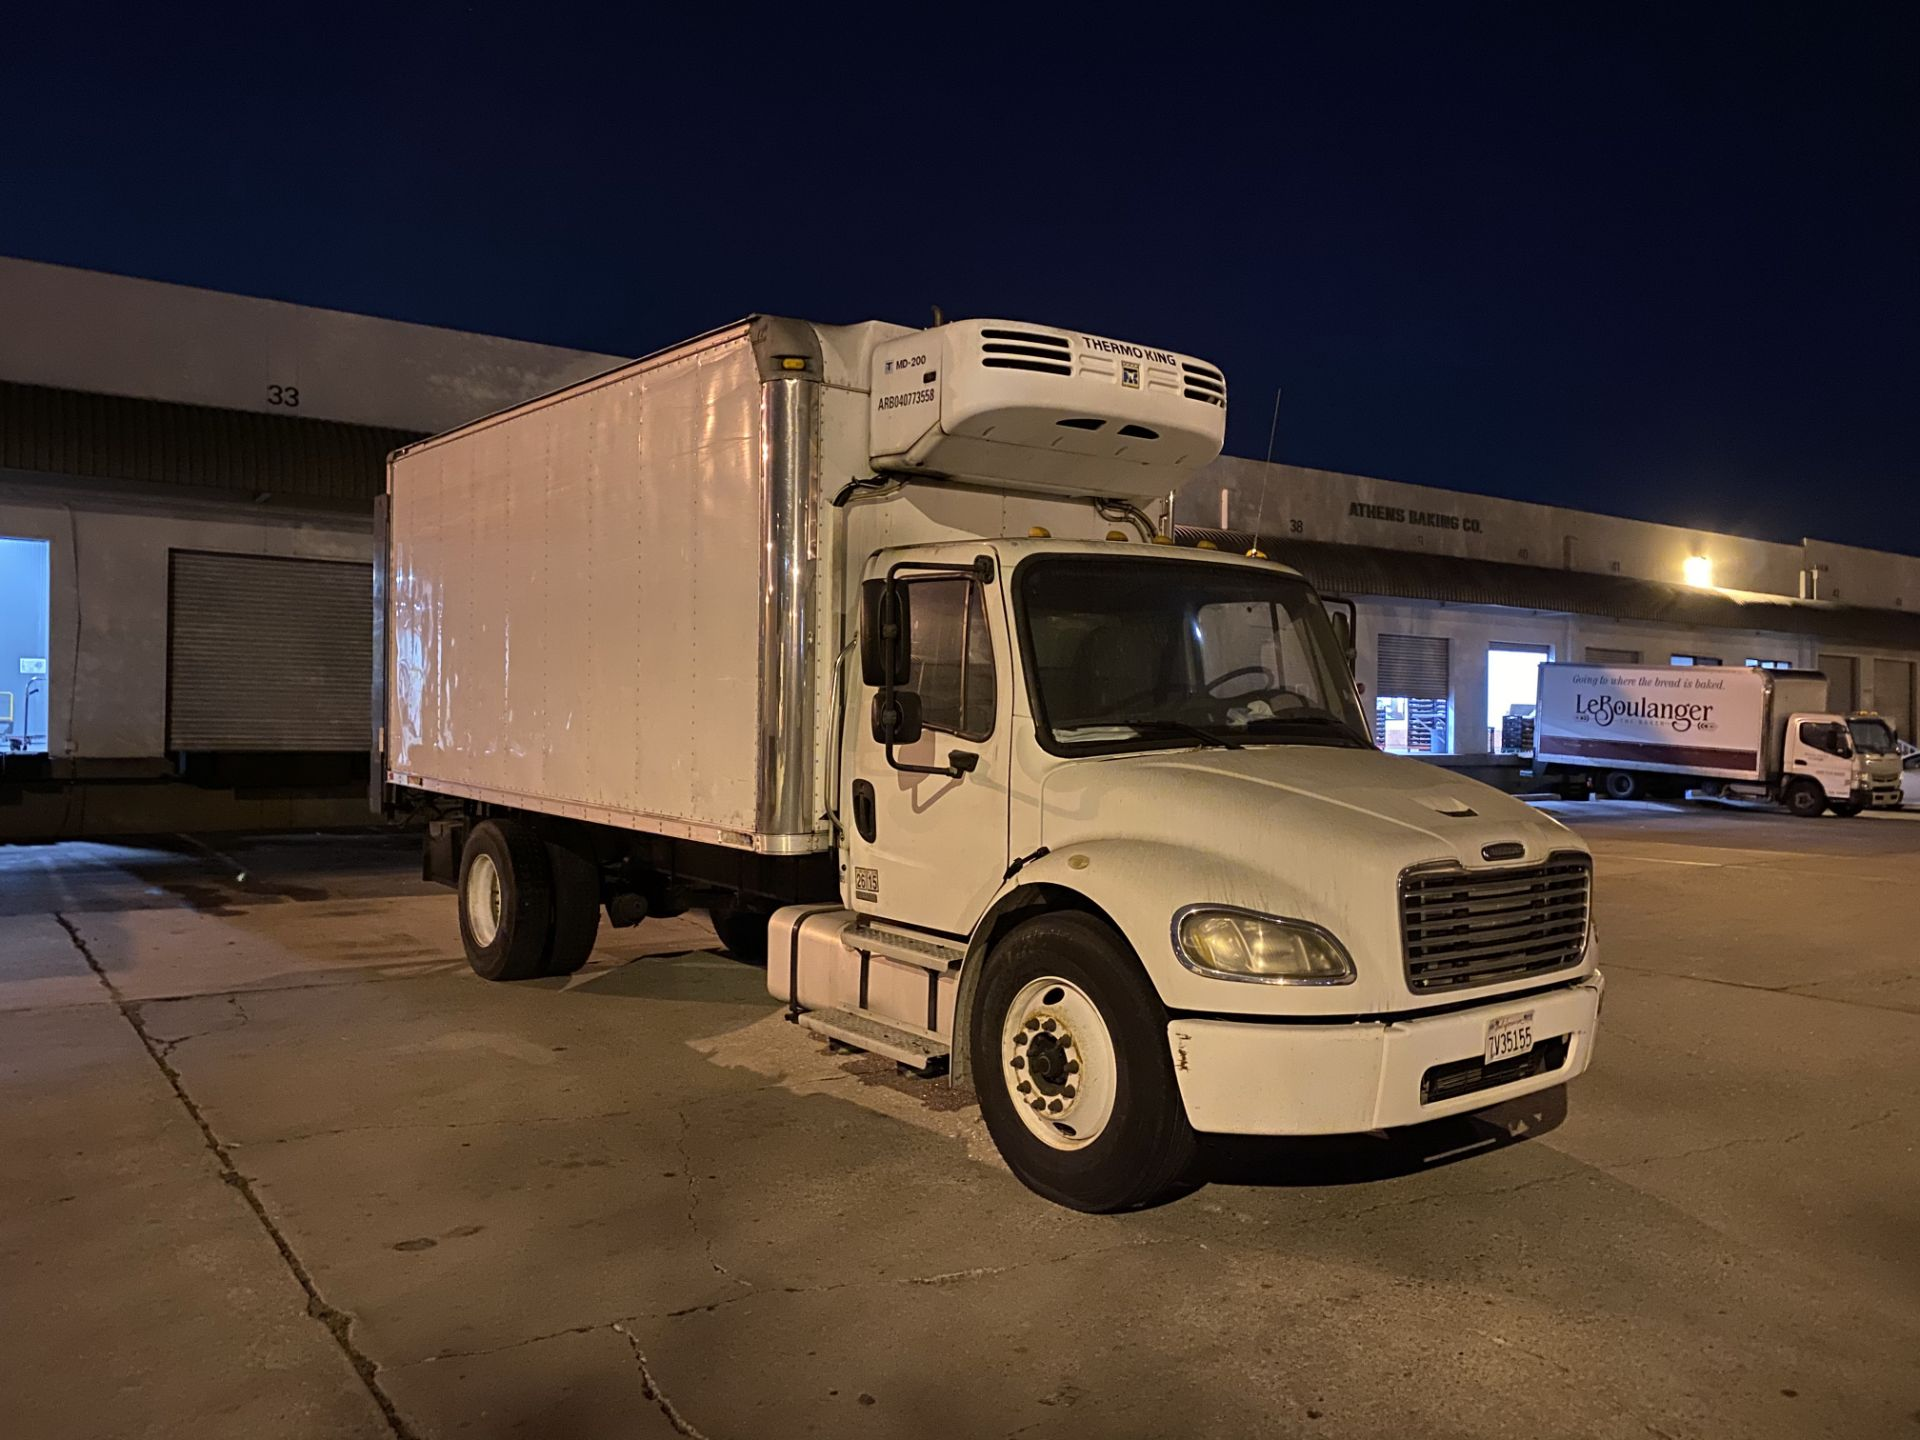 2005 Freightliner refrigerated truck - Image 4 of 5